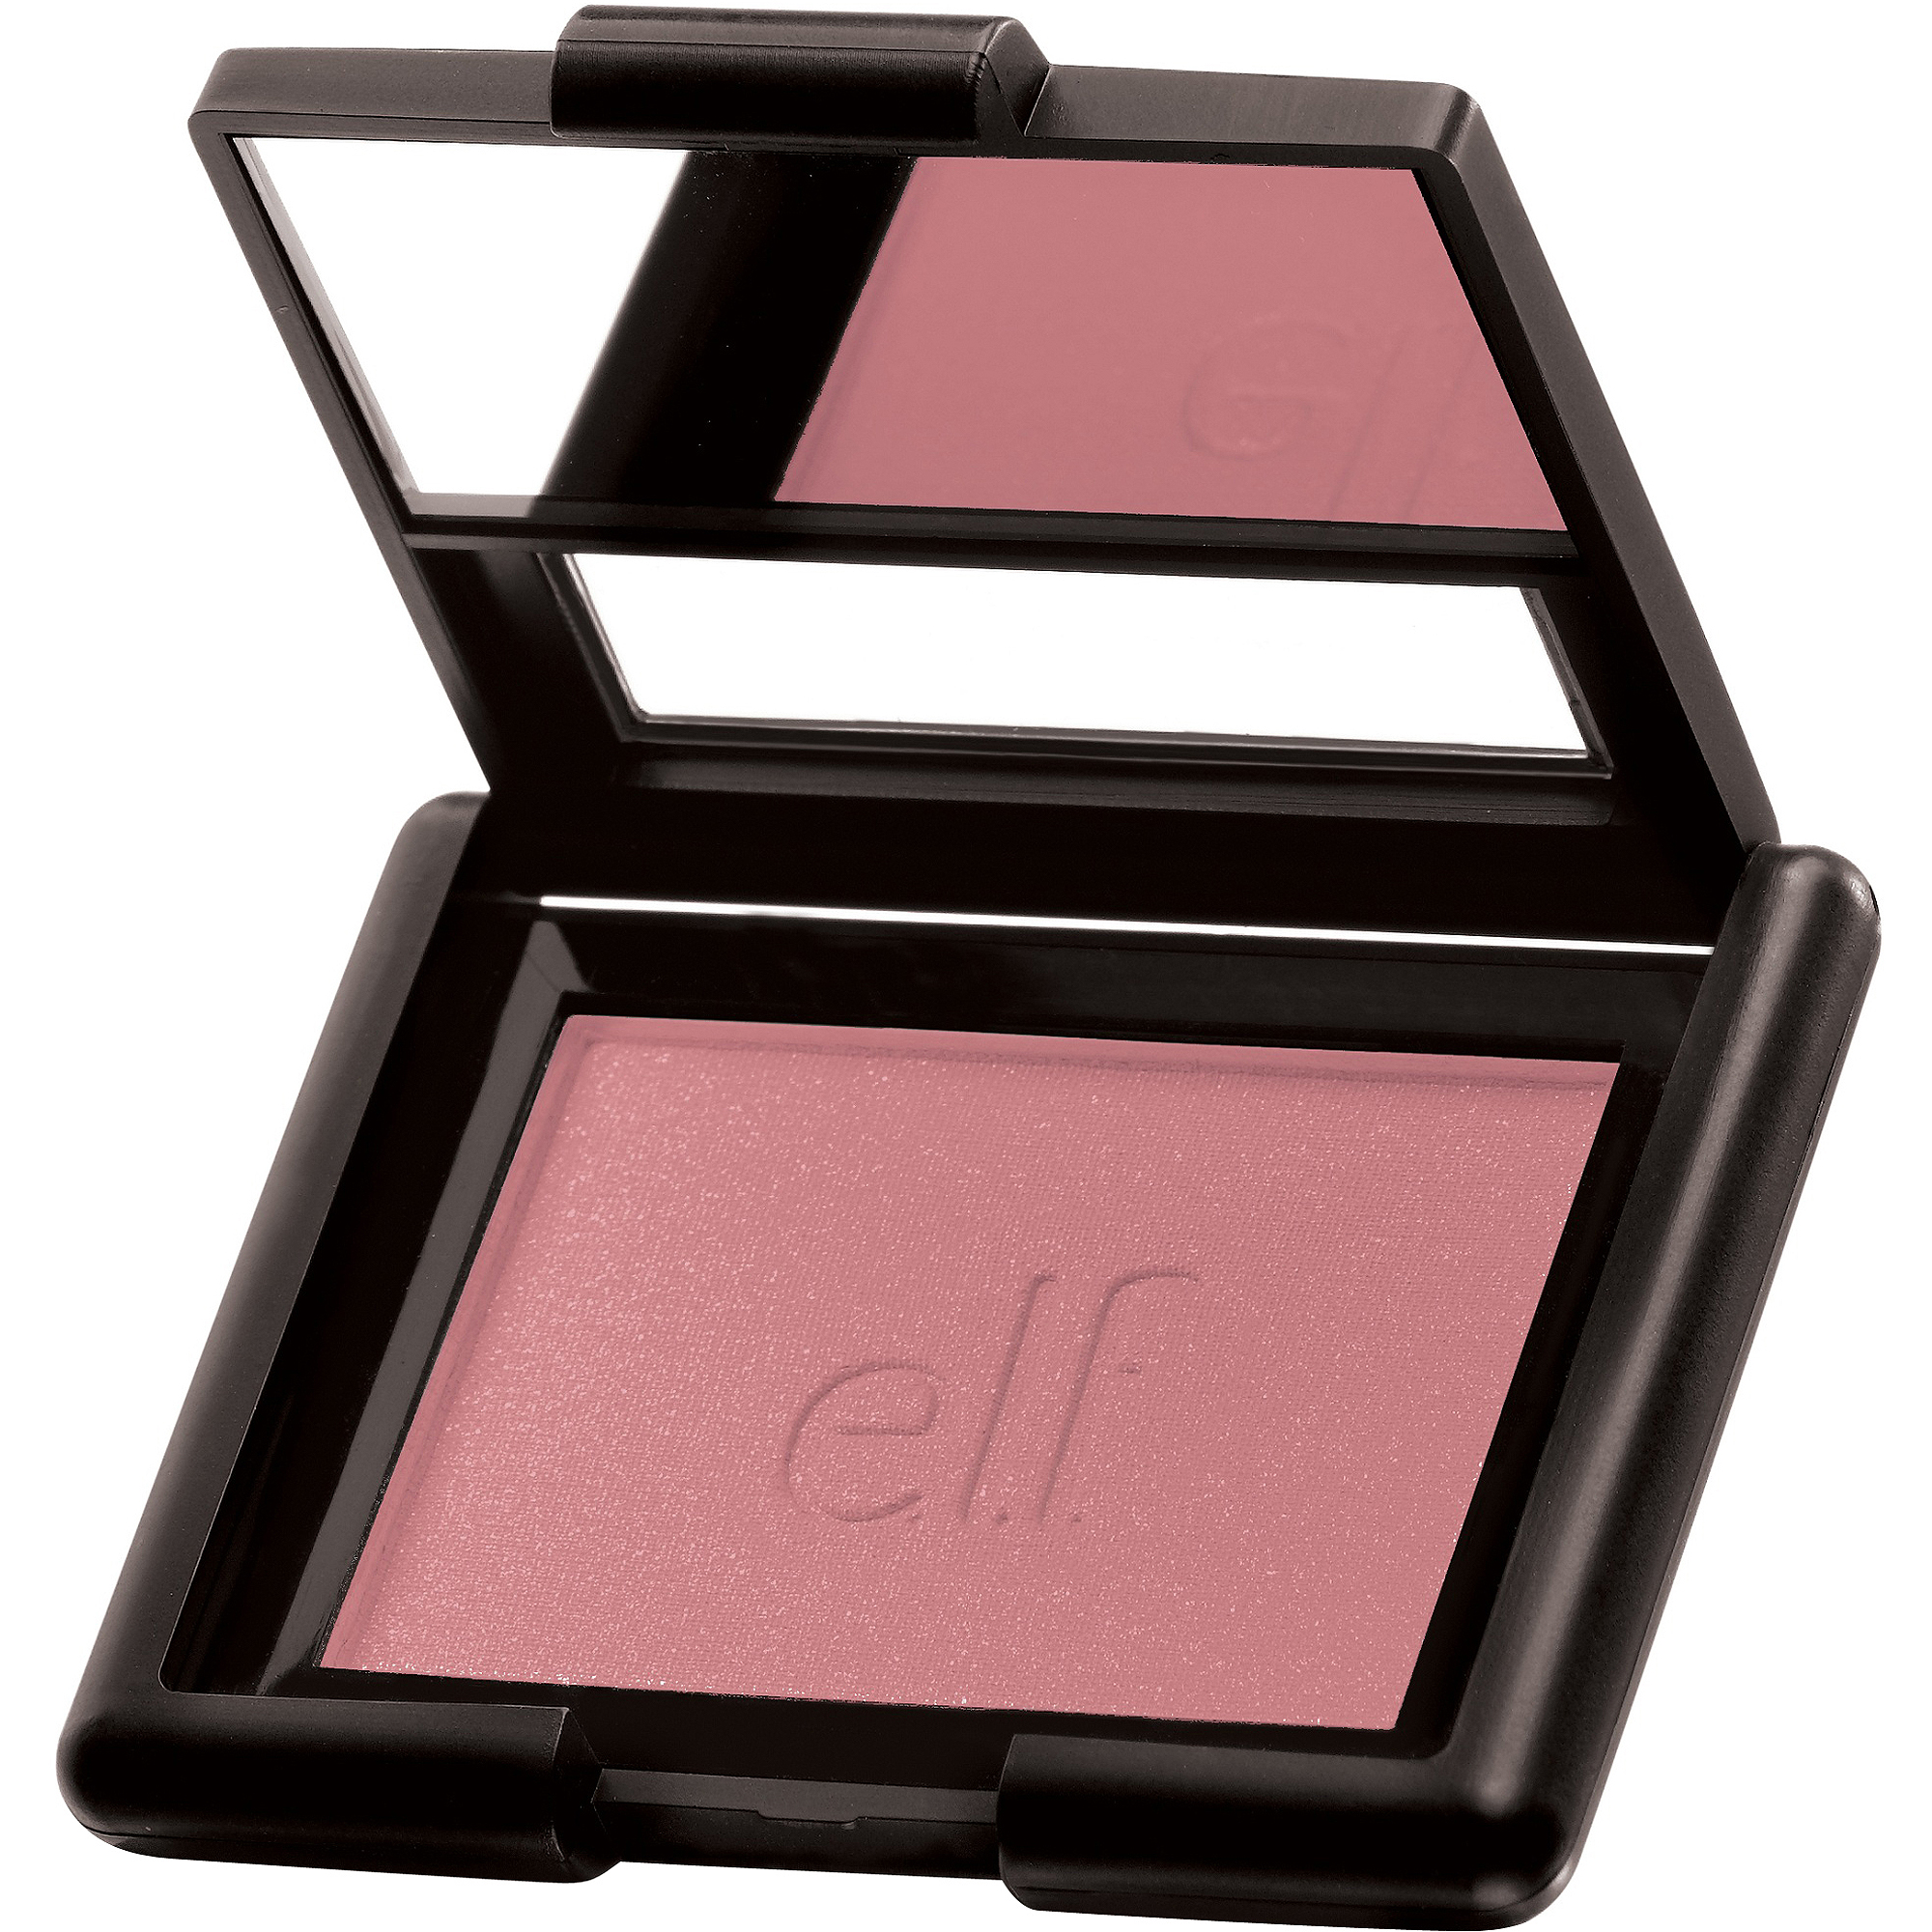 e.l.f. Blush, Mellow Mauve, 0.168 oz